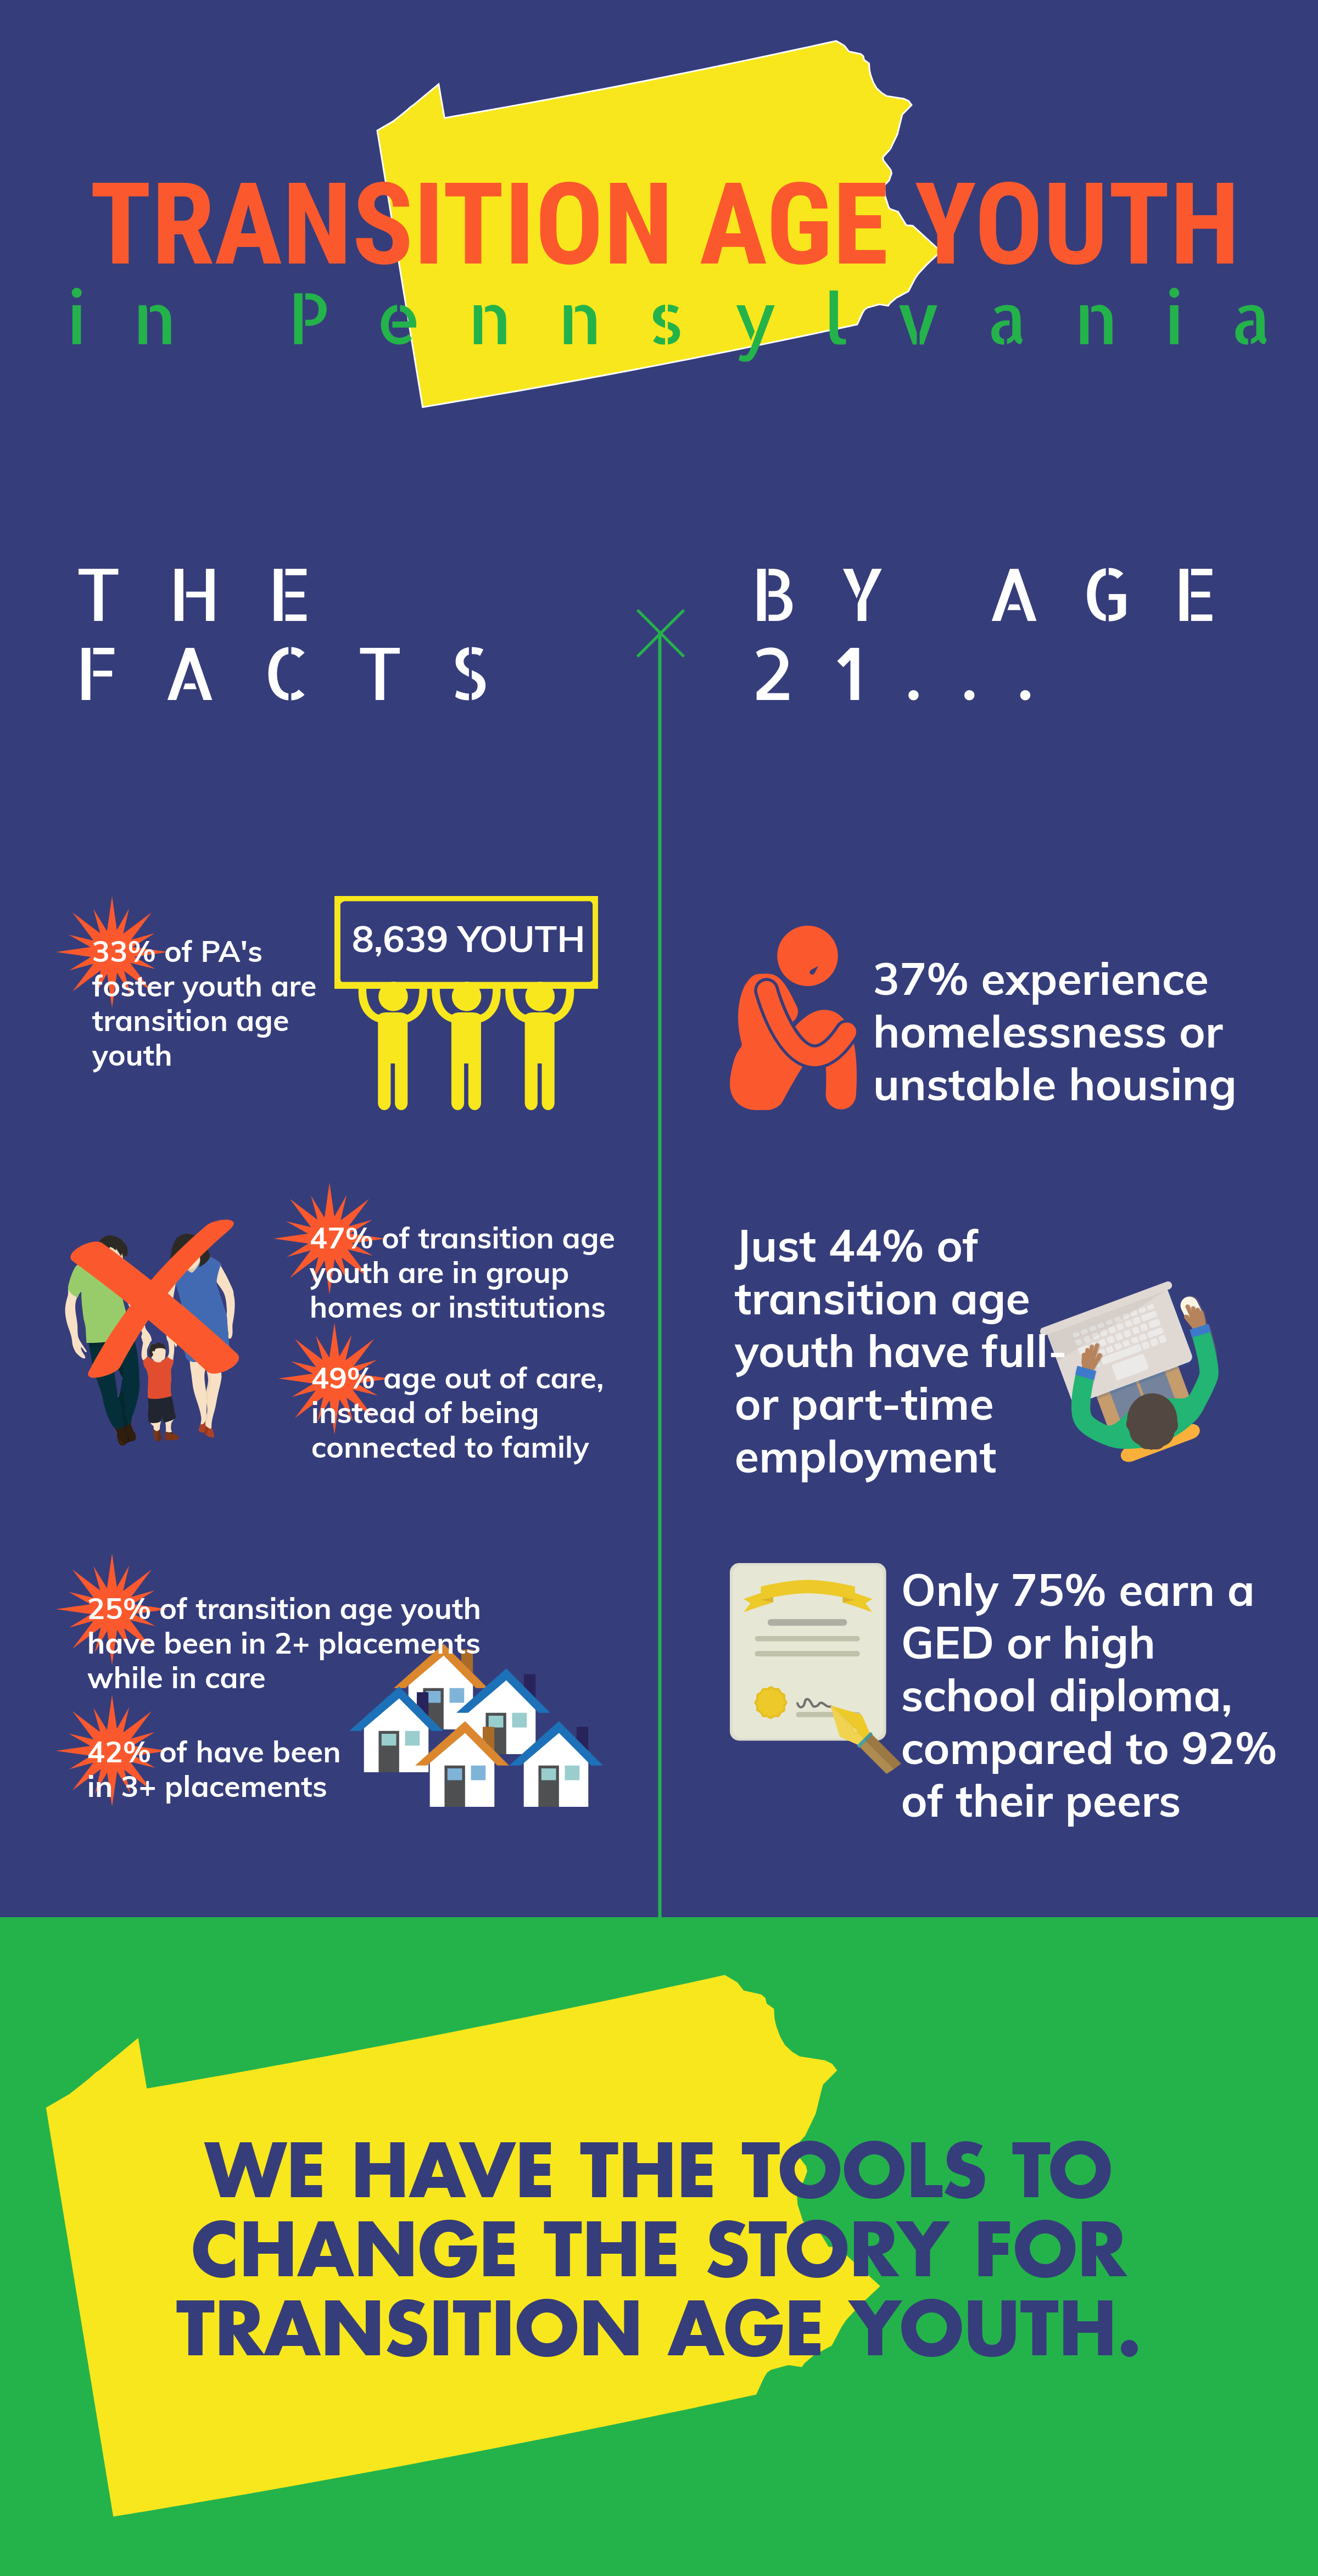 Infographic on PA foster youth statistics